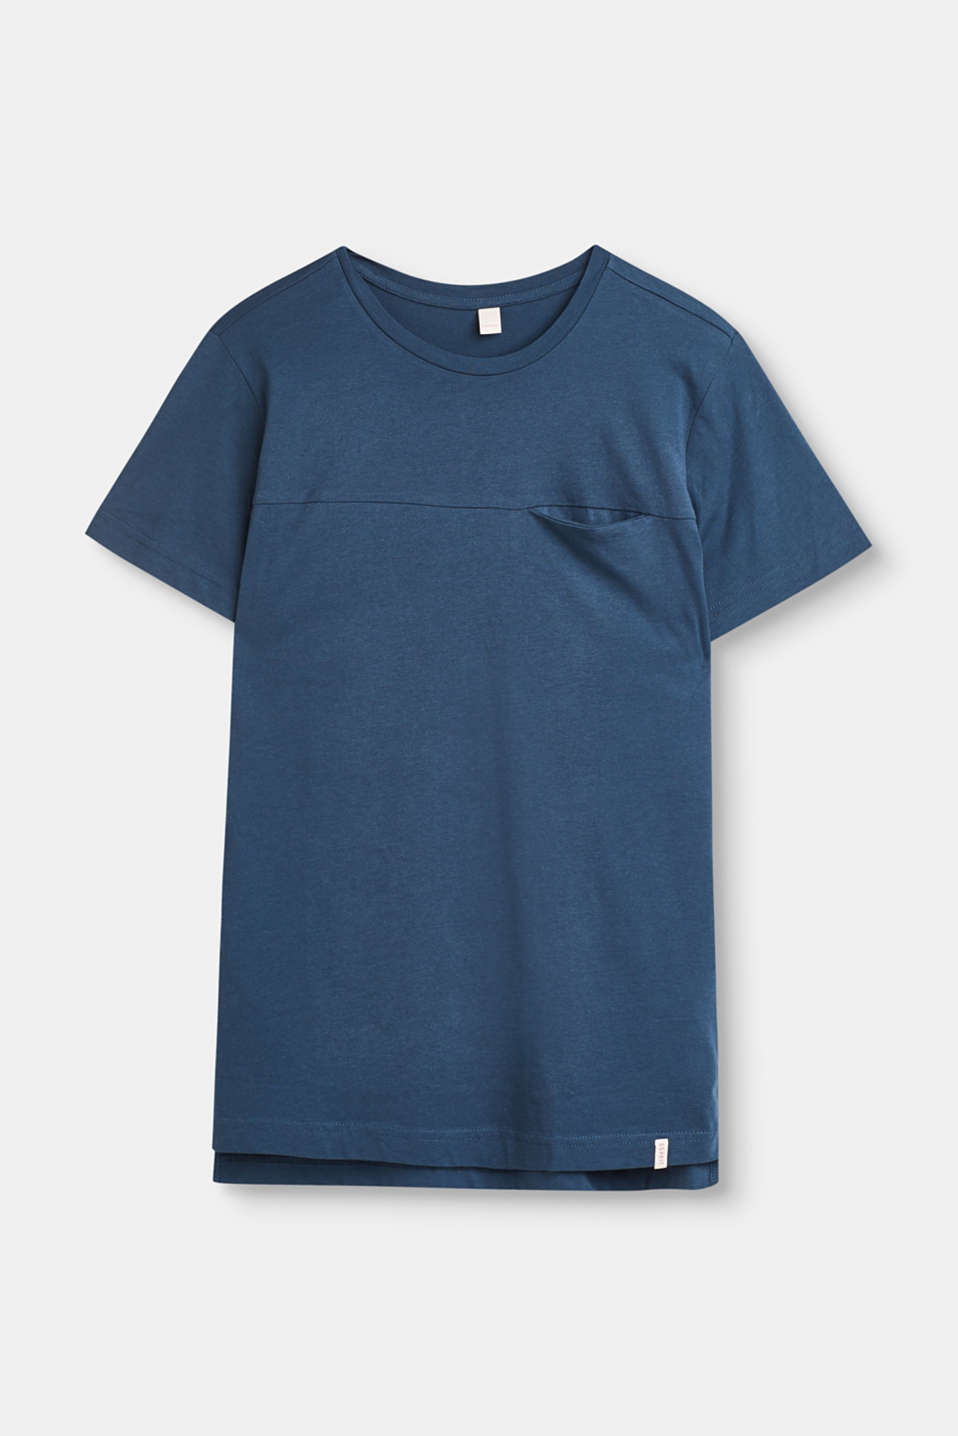 Esprit - T-shirt with a breast pocket, 100% cotton